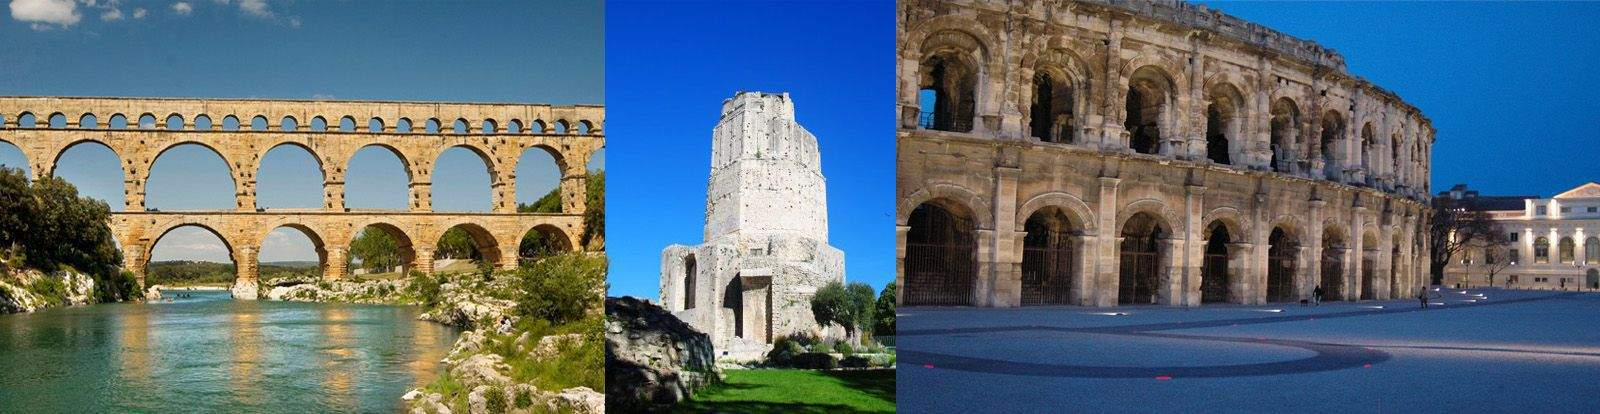 Monuments of Nimes